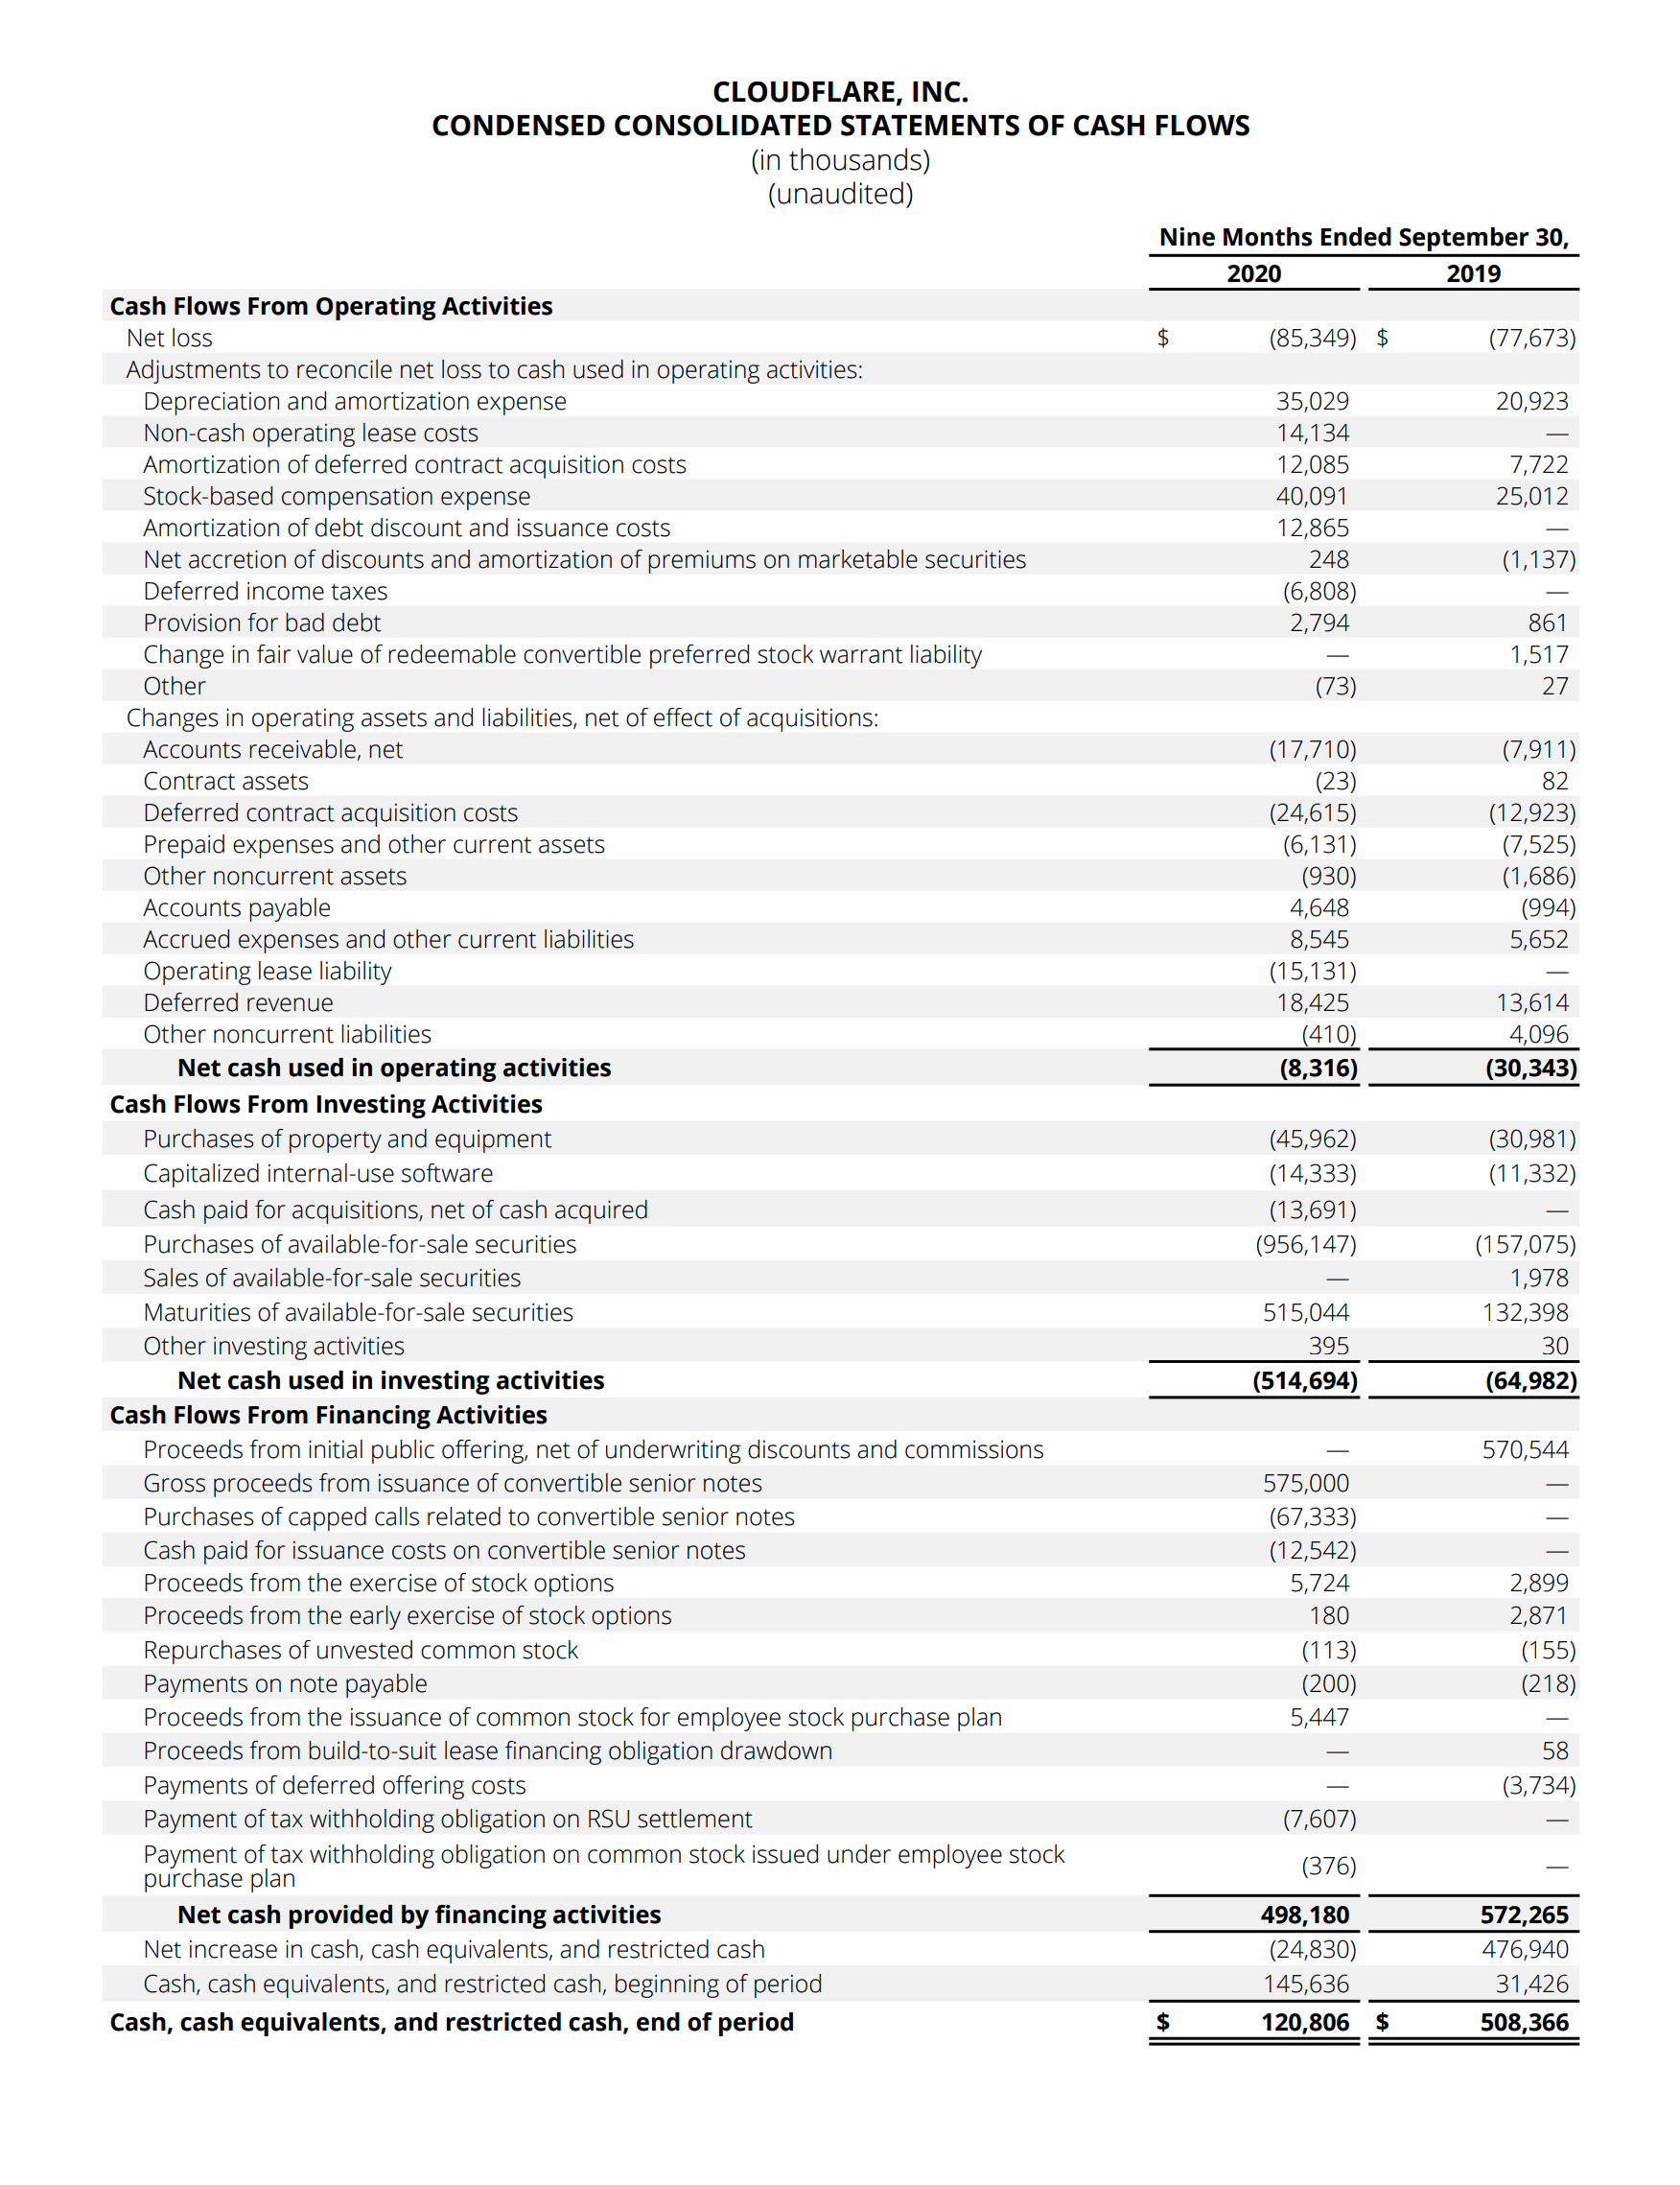 Cloudflare Inc. Condensed Consolidated Statements of Cash Flows